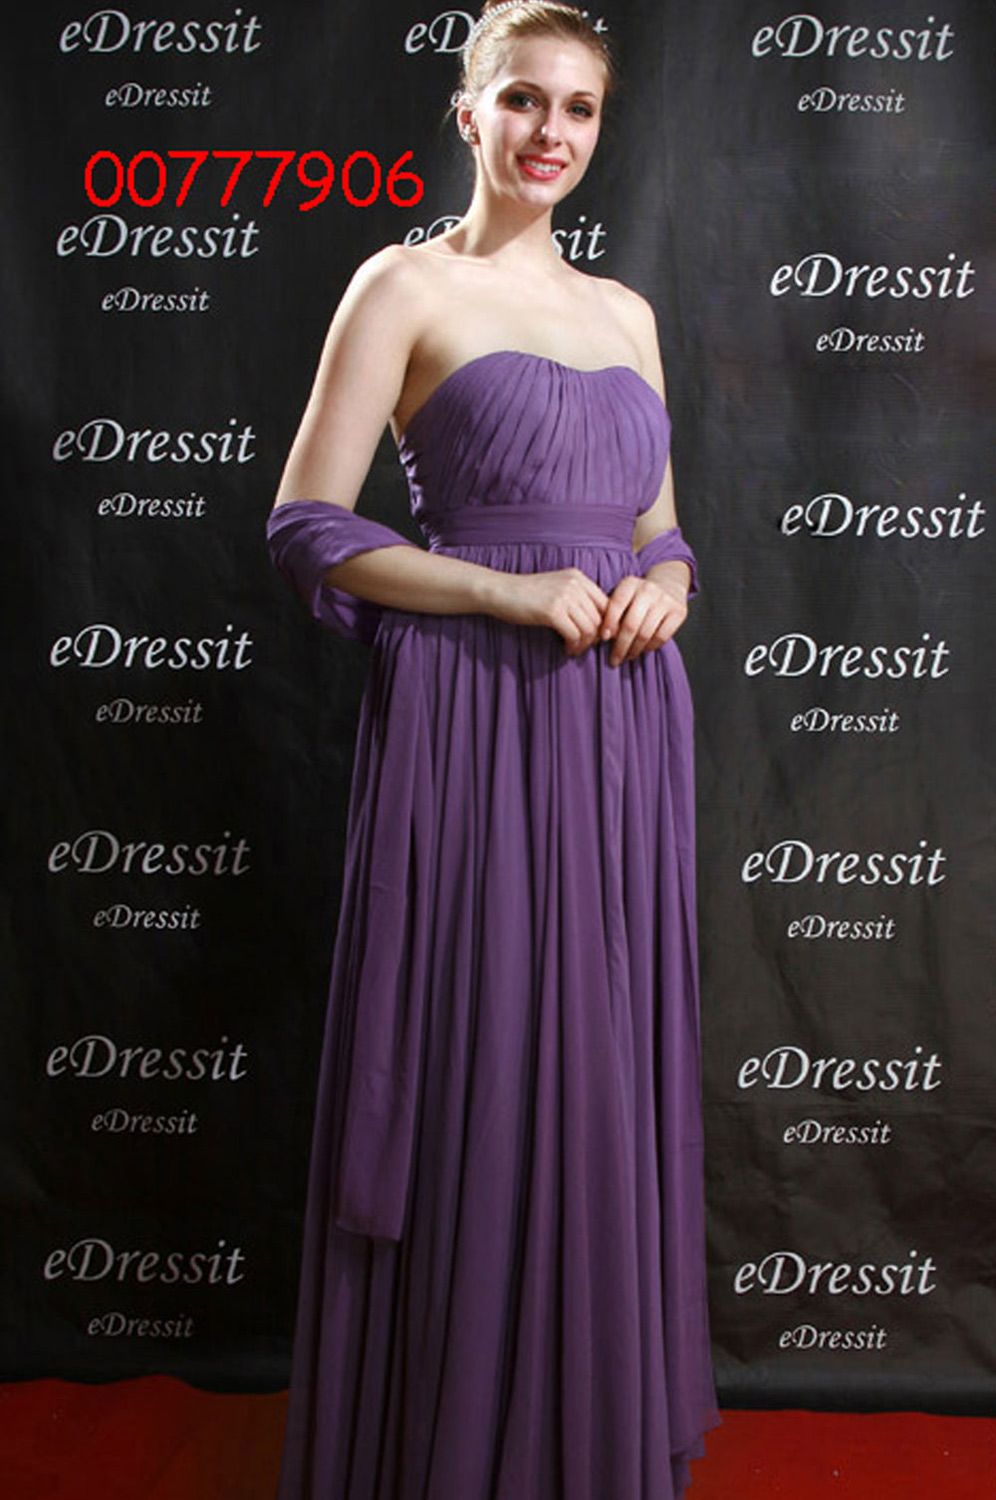 On sale !! eDressit Celebrity Sexy Prom Gown Evening Dress (00777906s)